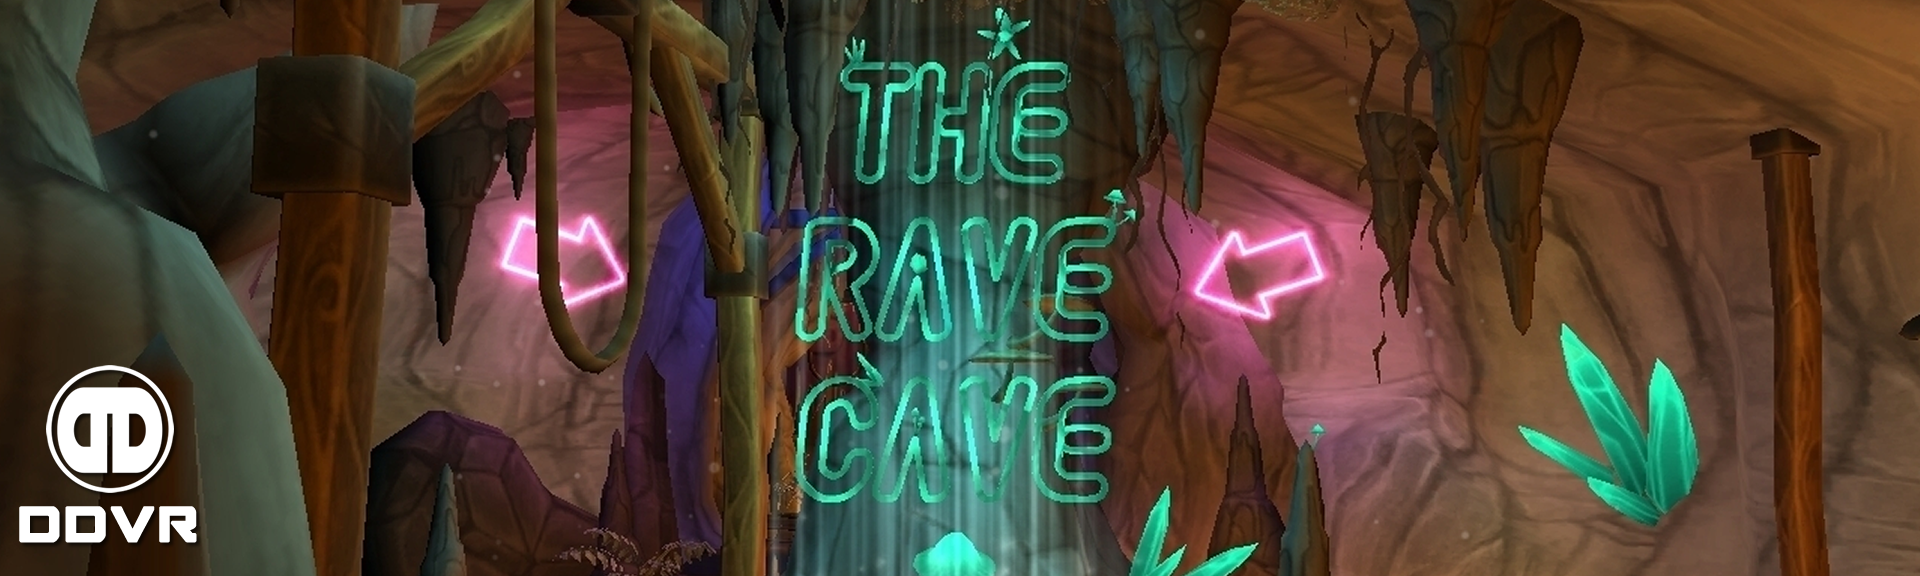 DDVR | D&B @ The Rave Cave (12,03,21)